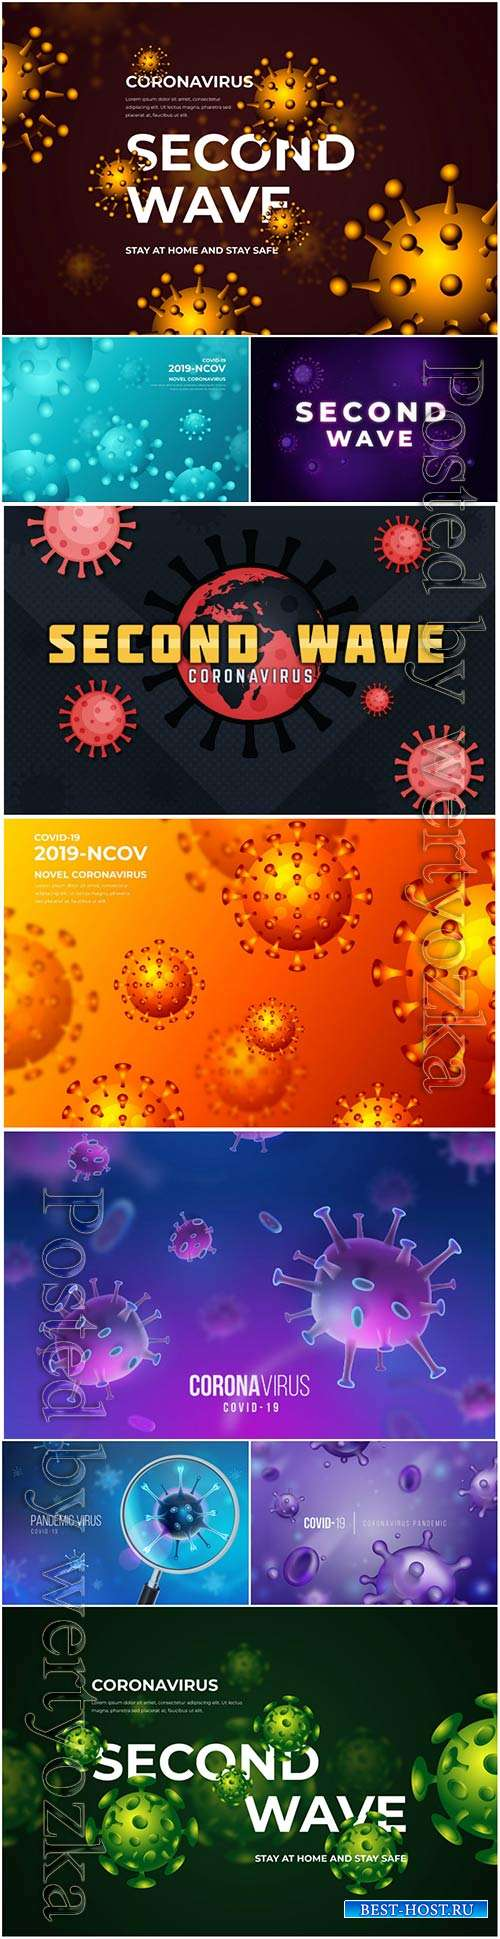 Realistic coronavirus vector background, stop covid-19 vol 7